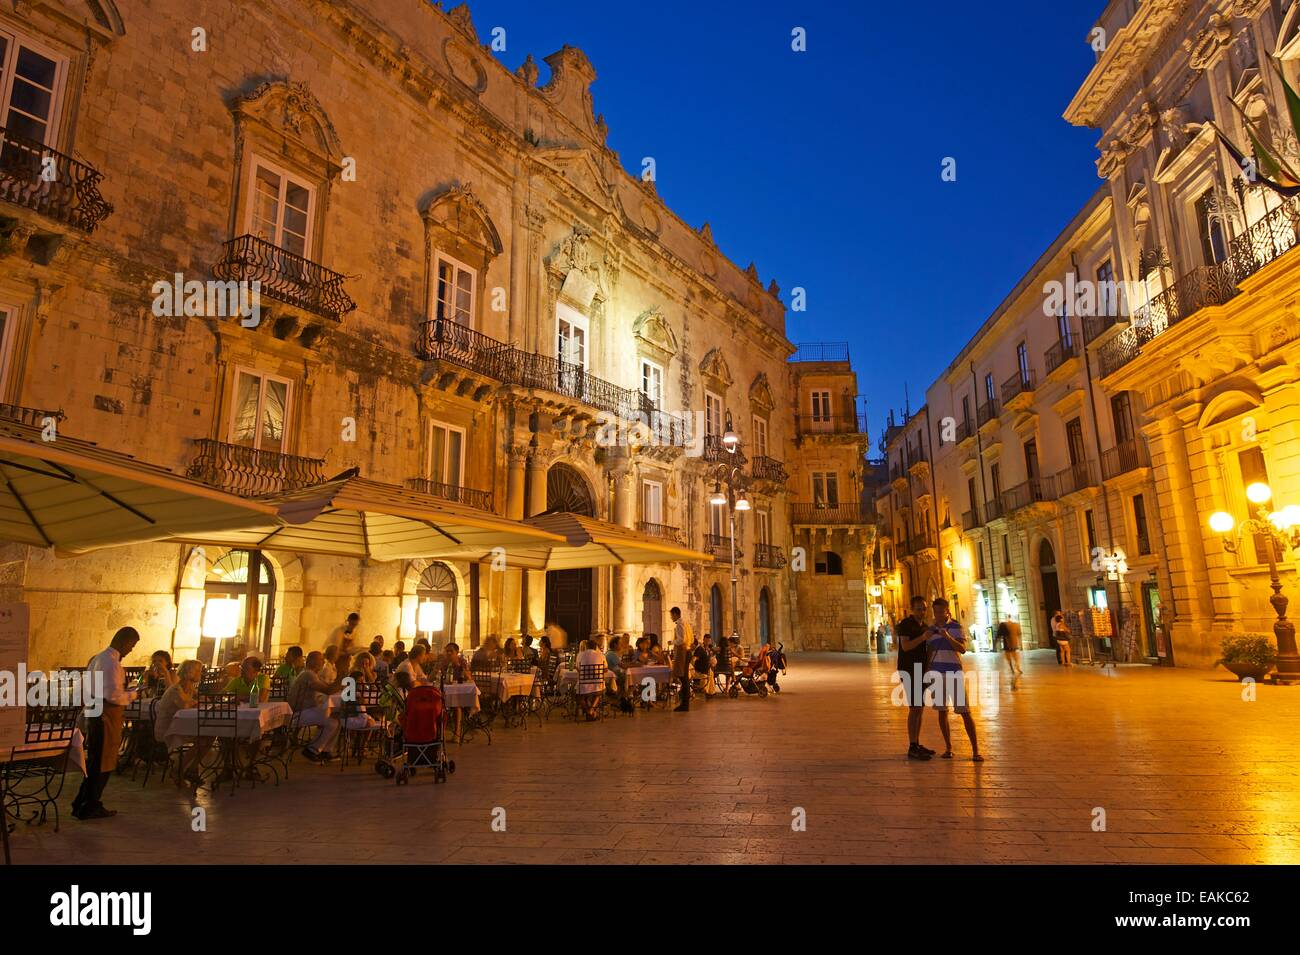 Stately houses in the historic town centre, Ortygia, Syracuse, Province of Syracuse, Sicily, Italy - Stock Image